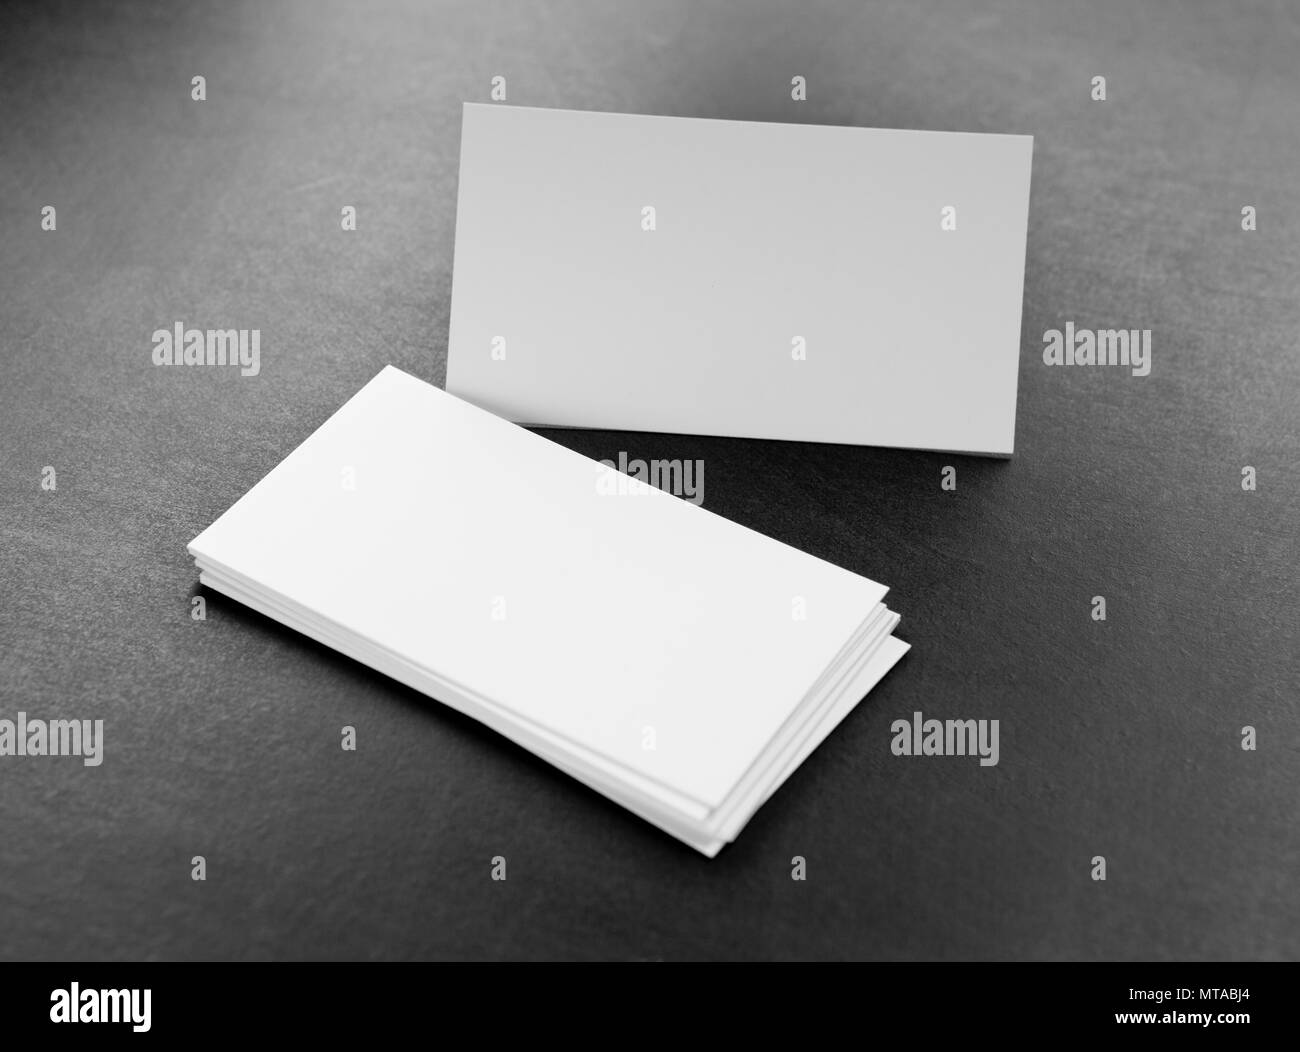 Blank Business Cards On A Grey Background Identity Design Corporate Templates Company Style